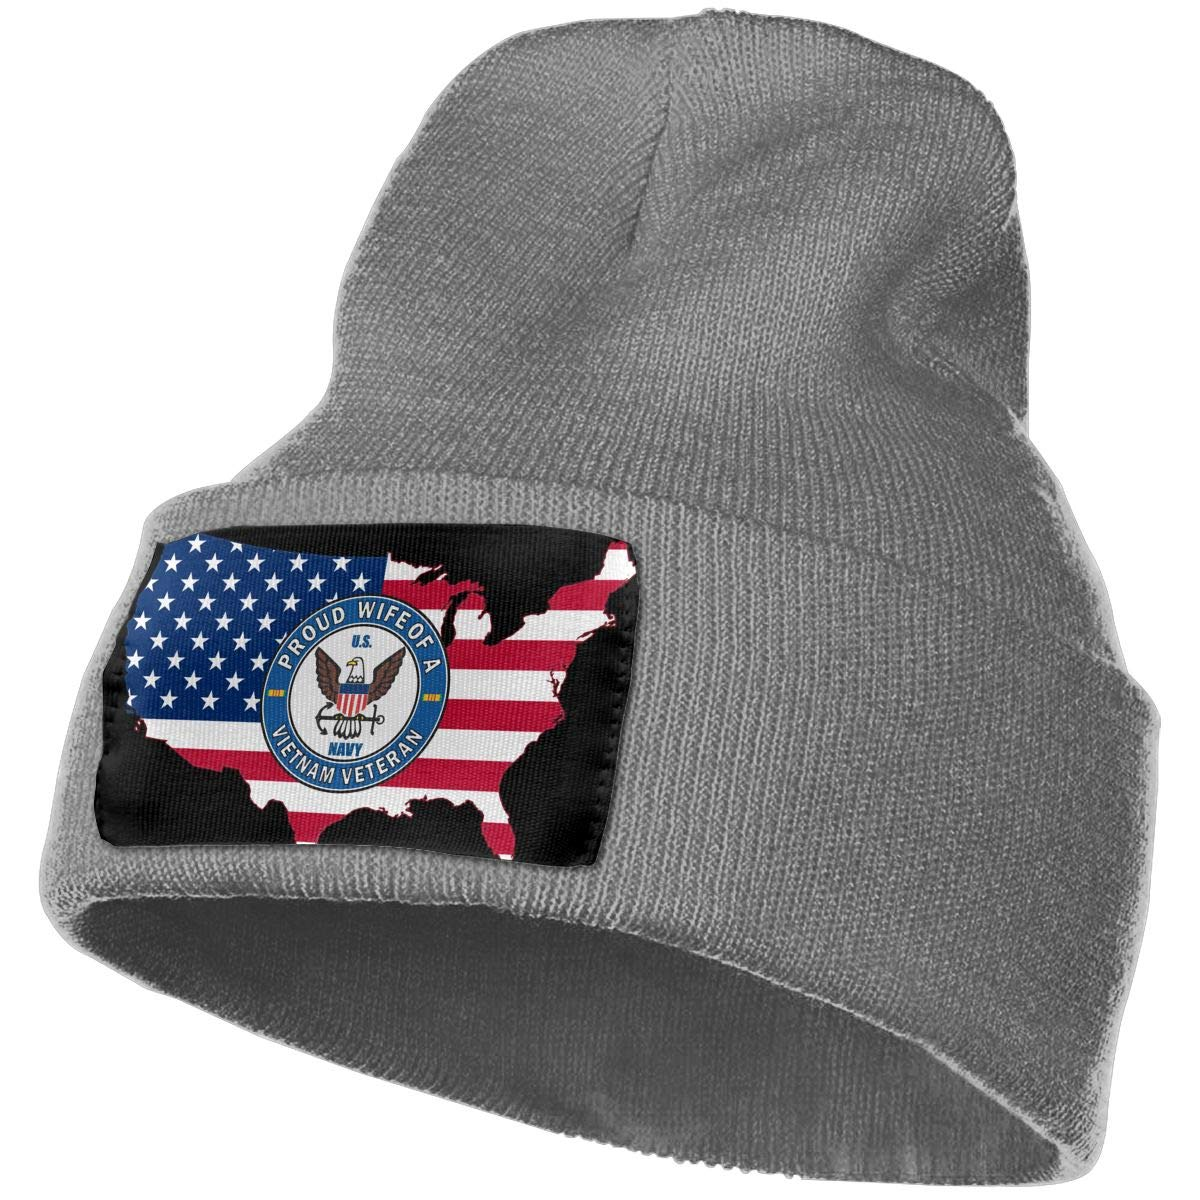 American Flag Map Navy Proud Wife of A Vietnam Veteran Men/&Women Warm Winter Knit Plain Beanie Hat Skull Cap Acrylic Knit Cuff Hat